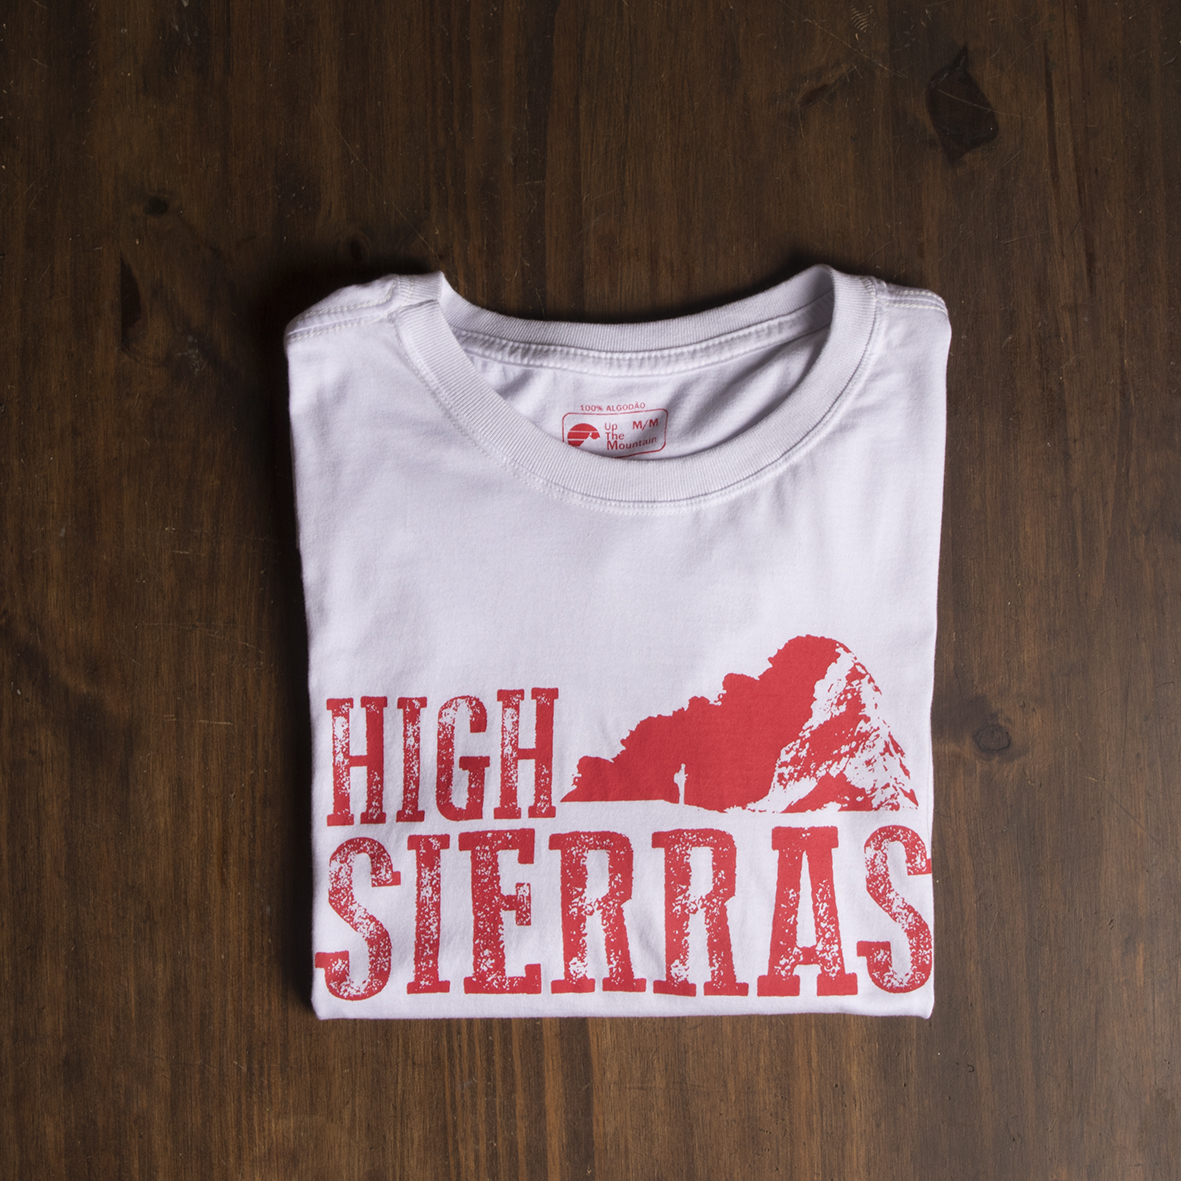 "Camiseta dobrada High Sierras da Marca "" Up The Mountain """